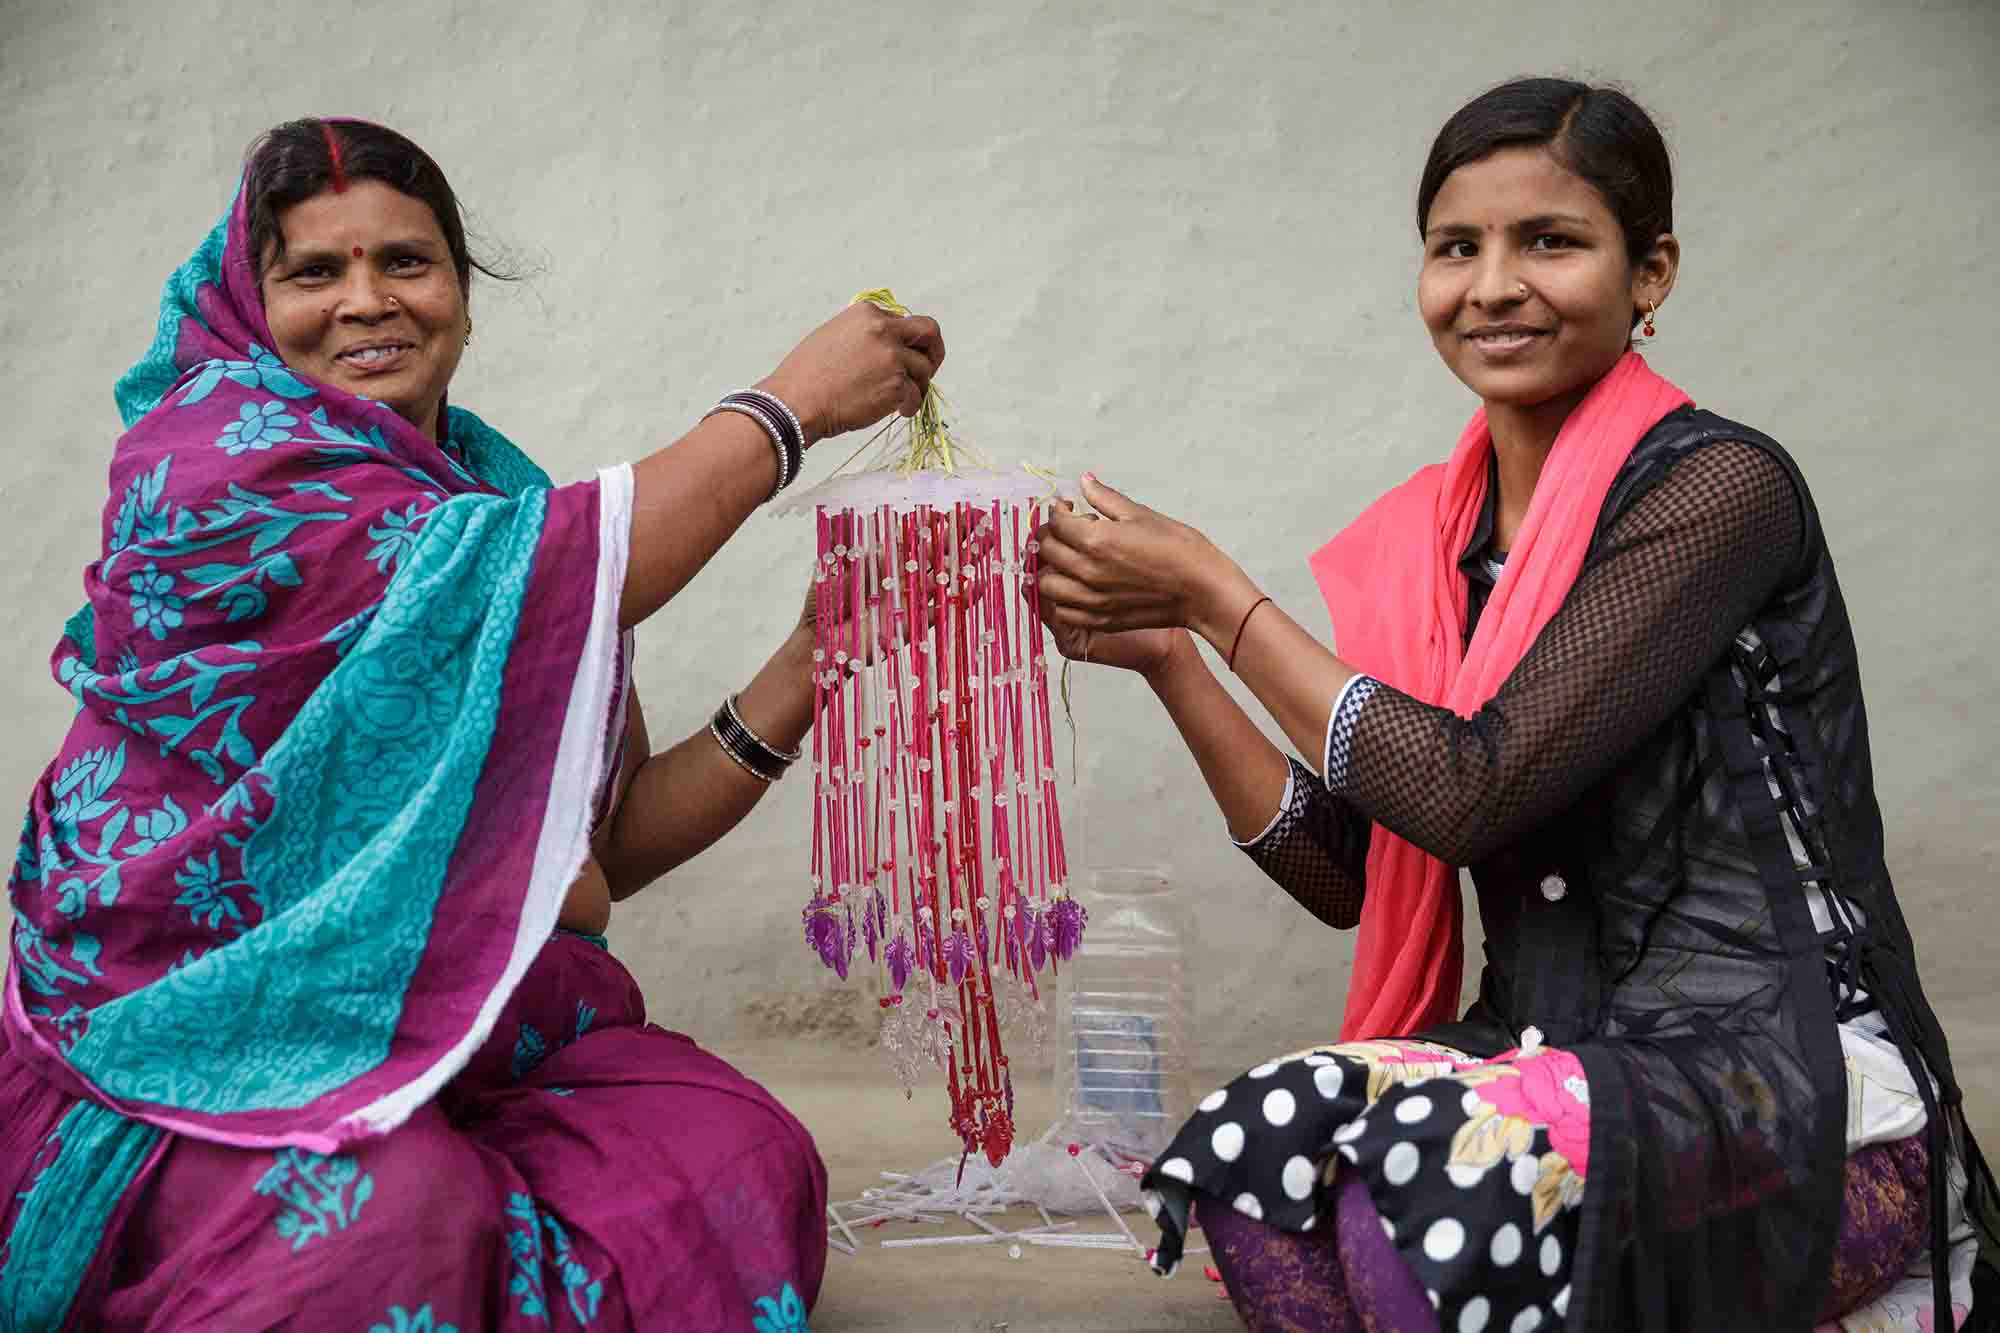 Munni Devi and her daughter Preeti Kumar, 19, make a wind chime together.